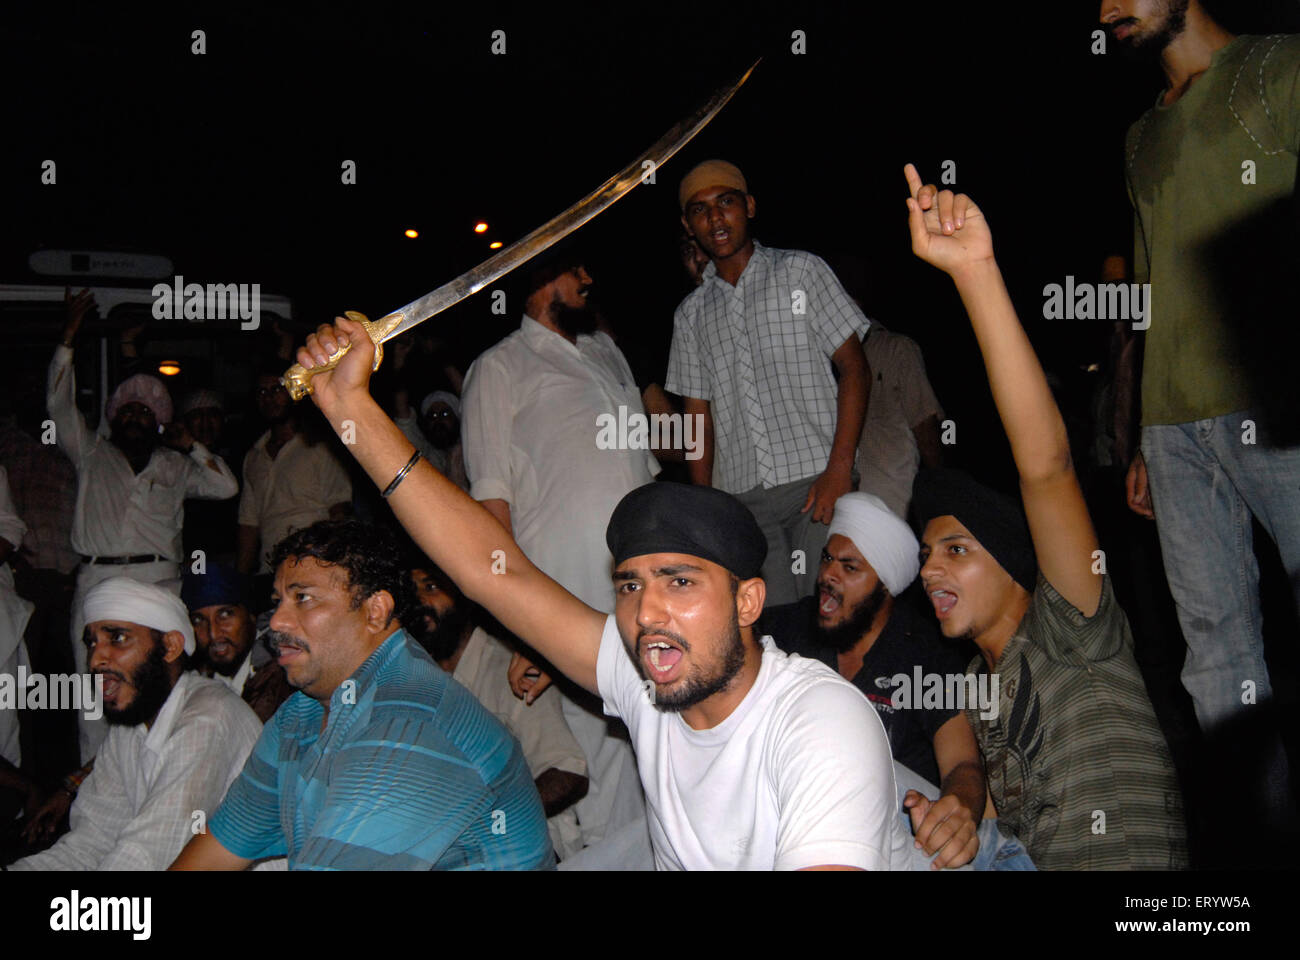 Sikh community protest against firing bodyguard of dera saccha sauda chief ram rahim at Mulund in Bombay - Stock Image